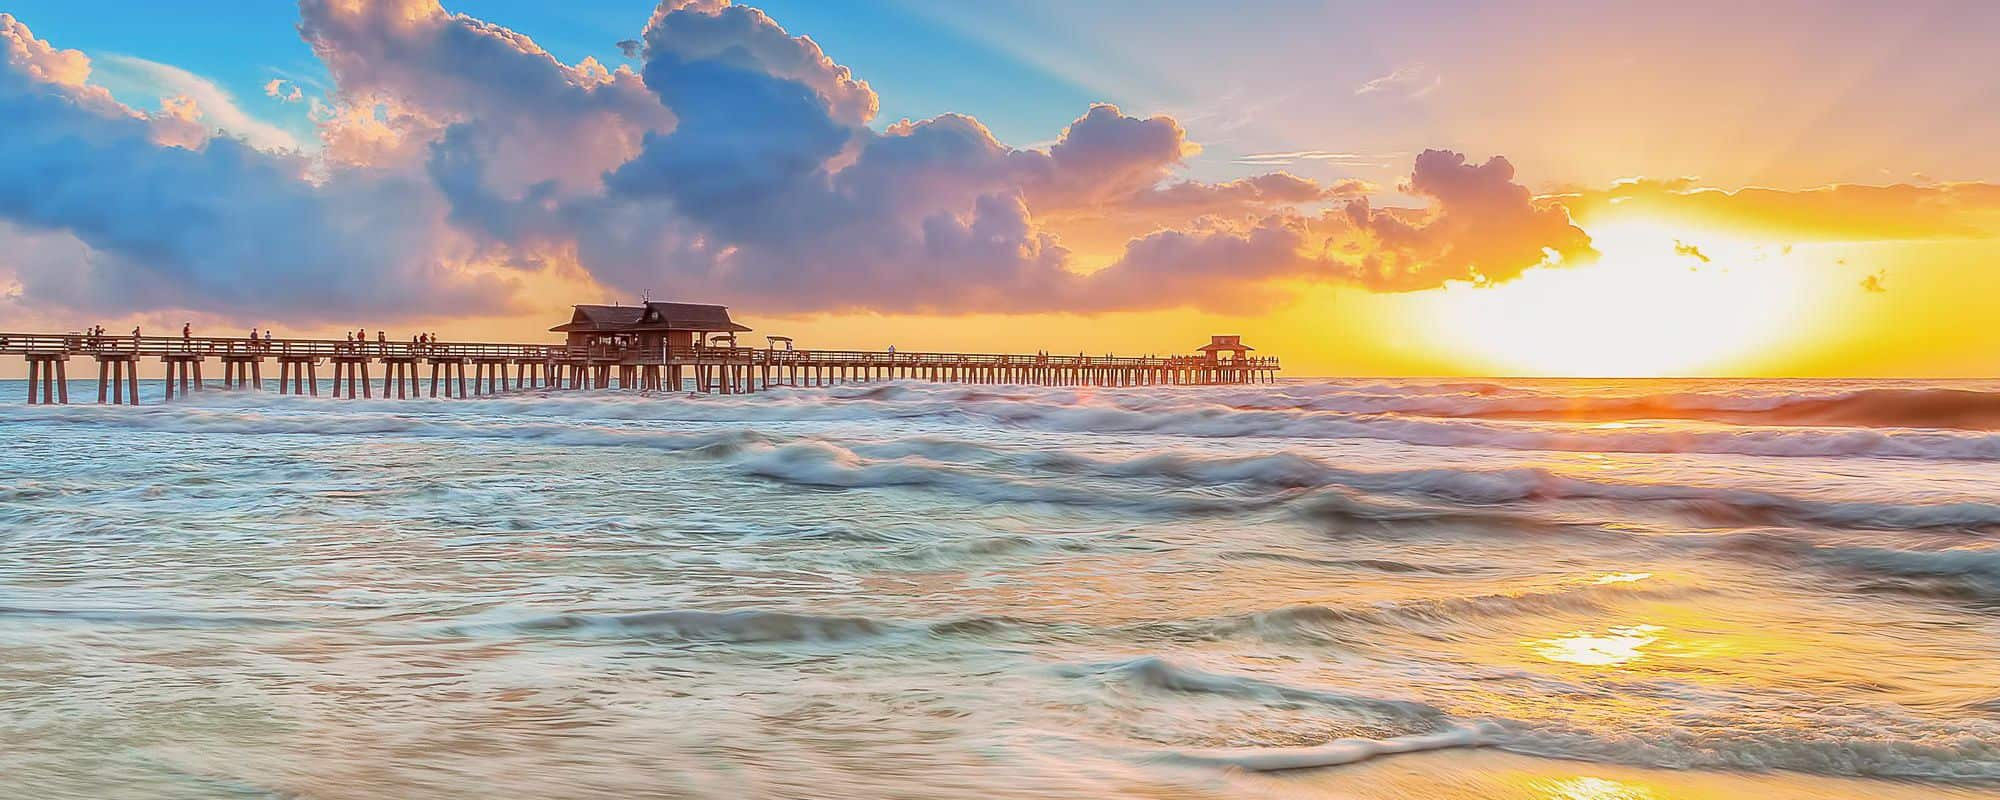 Another Top Ranking for Naples, Florida | #1 Spot for Well-being